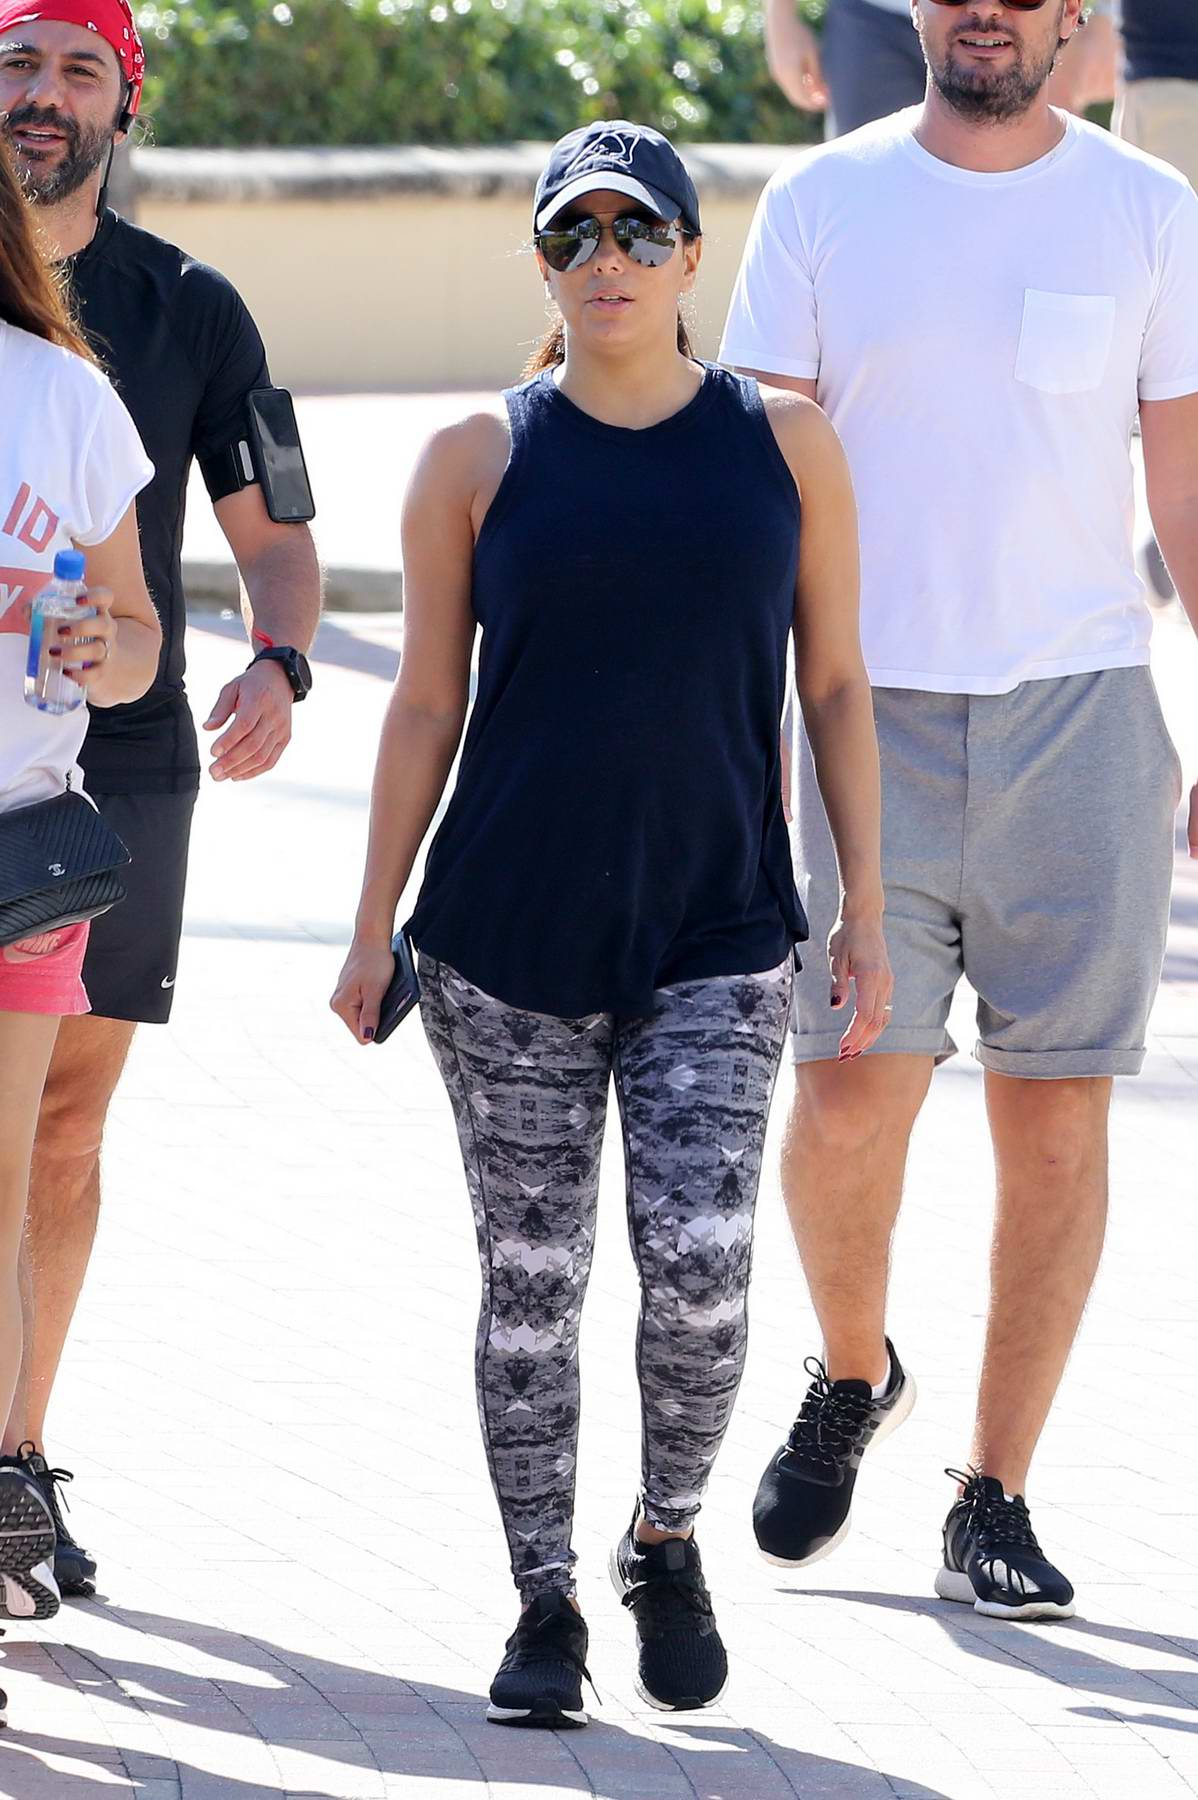 Eva Longoria takes a walk with her husband Jose Baston on Christmas day in Miami beach, Florida